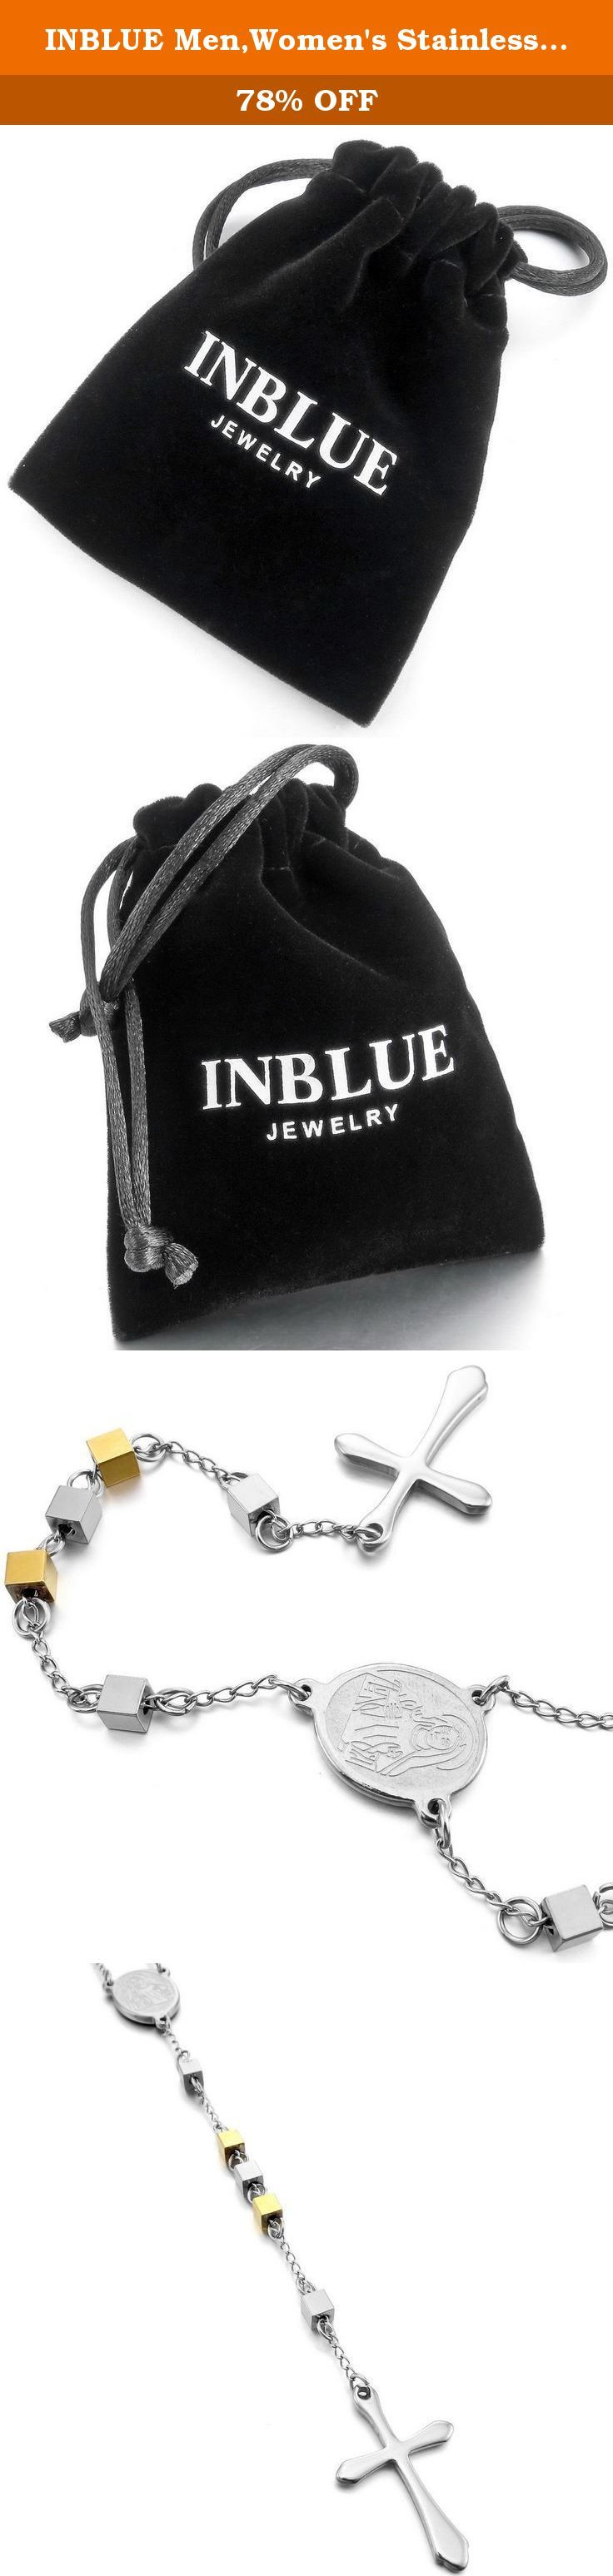 INBLUE Men,Women's Stainless Steel Pendant Necklace Gold Silver Two Tone Virgin Mary Christ Crucifix Cross Pentagram Pentacle Star Rosary 26 Inch Chain. INBLUE - High quality Jewelry Discover the INBLUE Collection of jewelry. The selection of high-quality jewelry featured in the INBLUE Collection offers Great values at affordable Price, they mainly made of high quality Stainless Steel, Tungsten, Silver and Leather. Find a special gift for a loved one or a beautiful piece that complements...